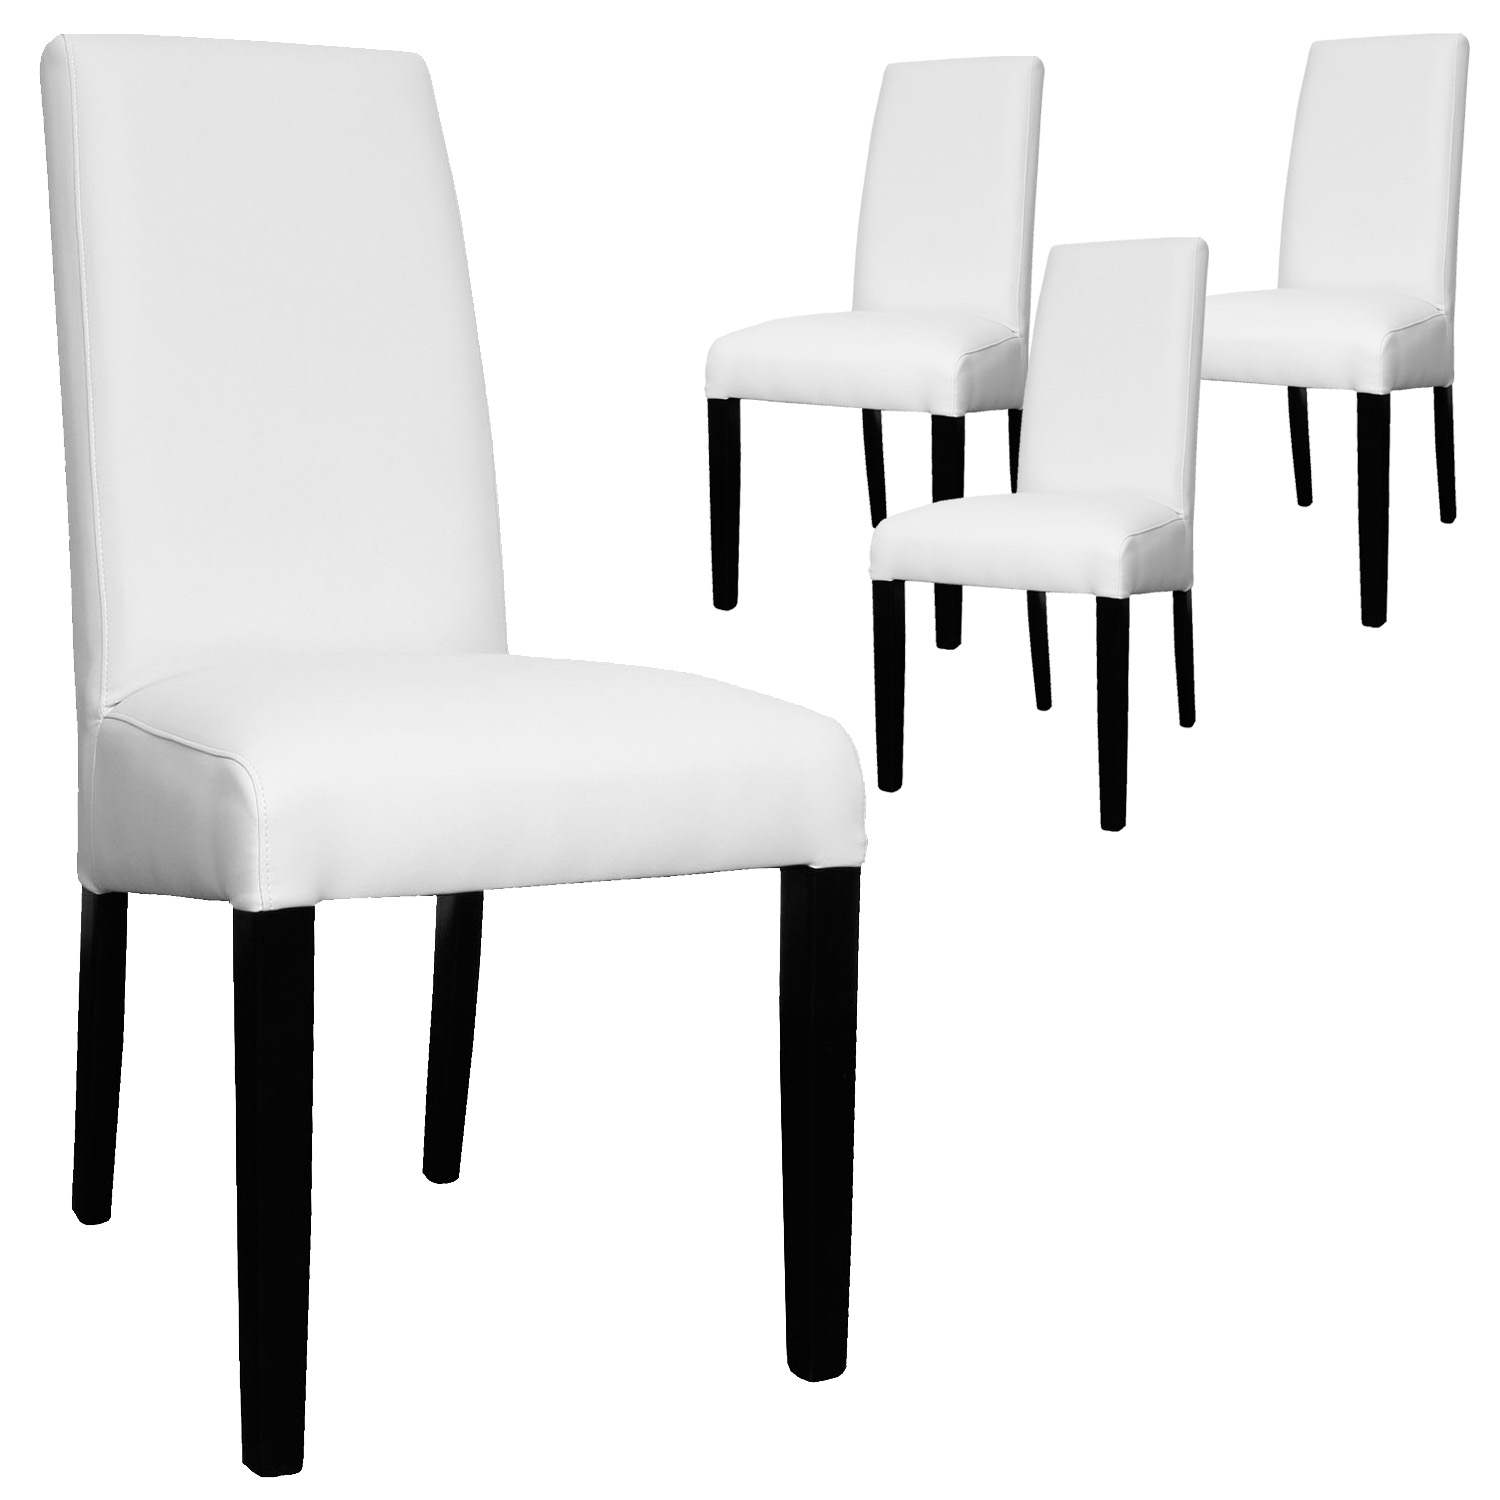 Deco in paris lot de 4 chaises blanche muka muka x4 blanc for Chaise blanche pied noir